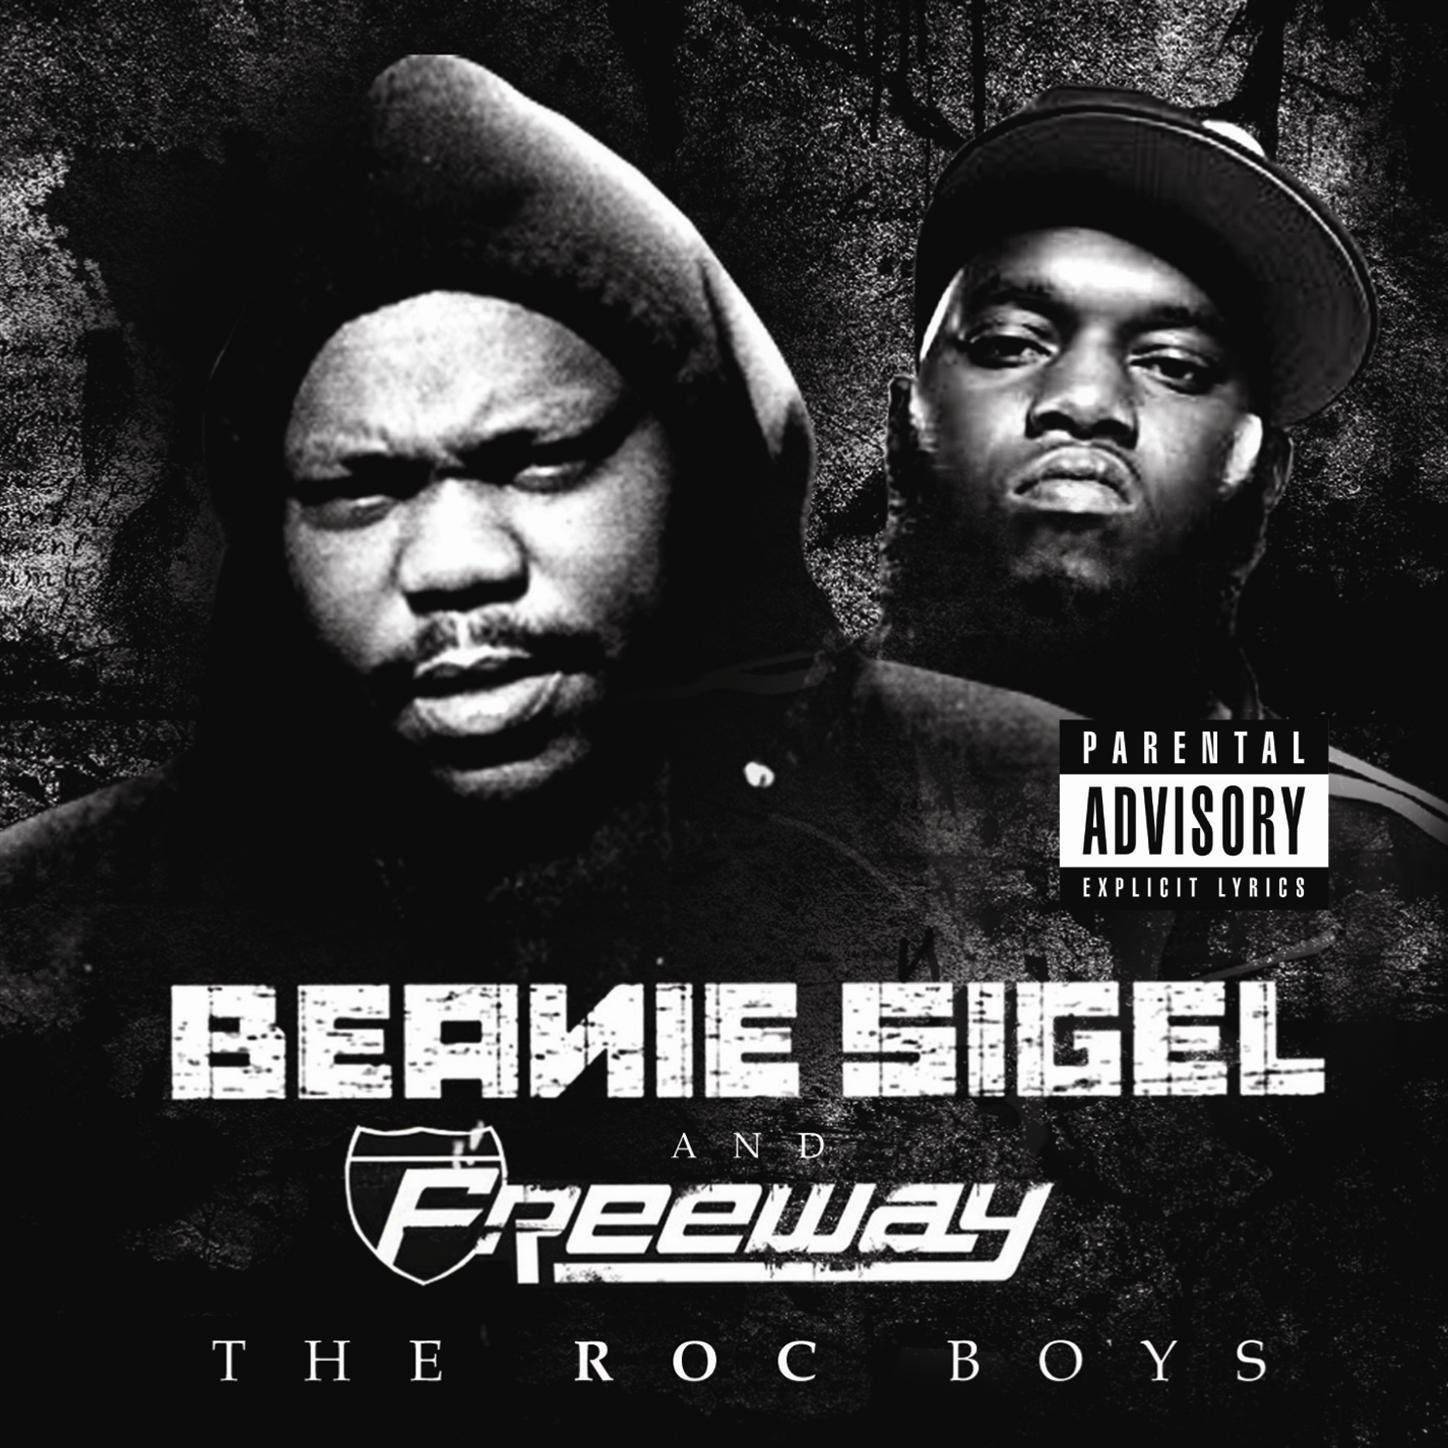 Beanie Sigel And Freeway - The Roc Boys (2010) [FLAC] Download